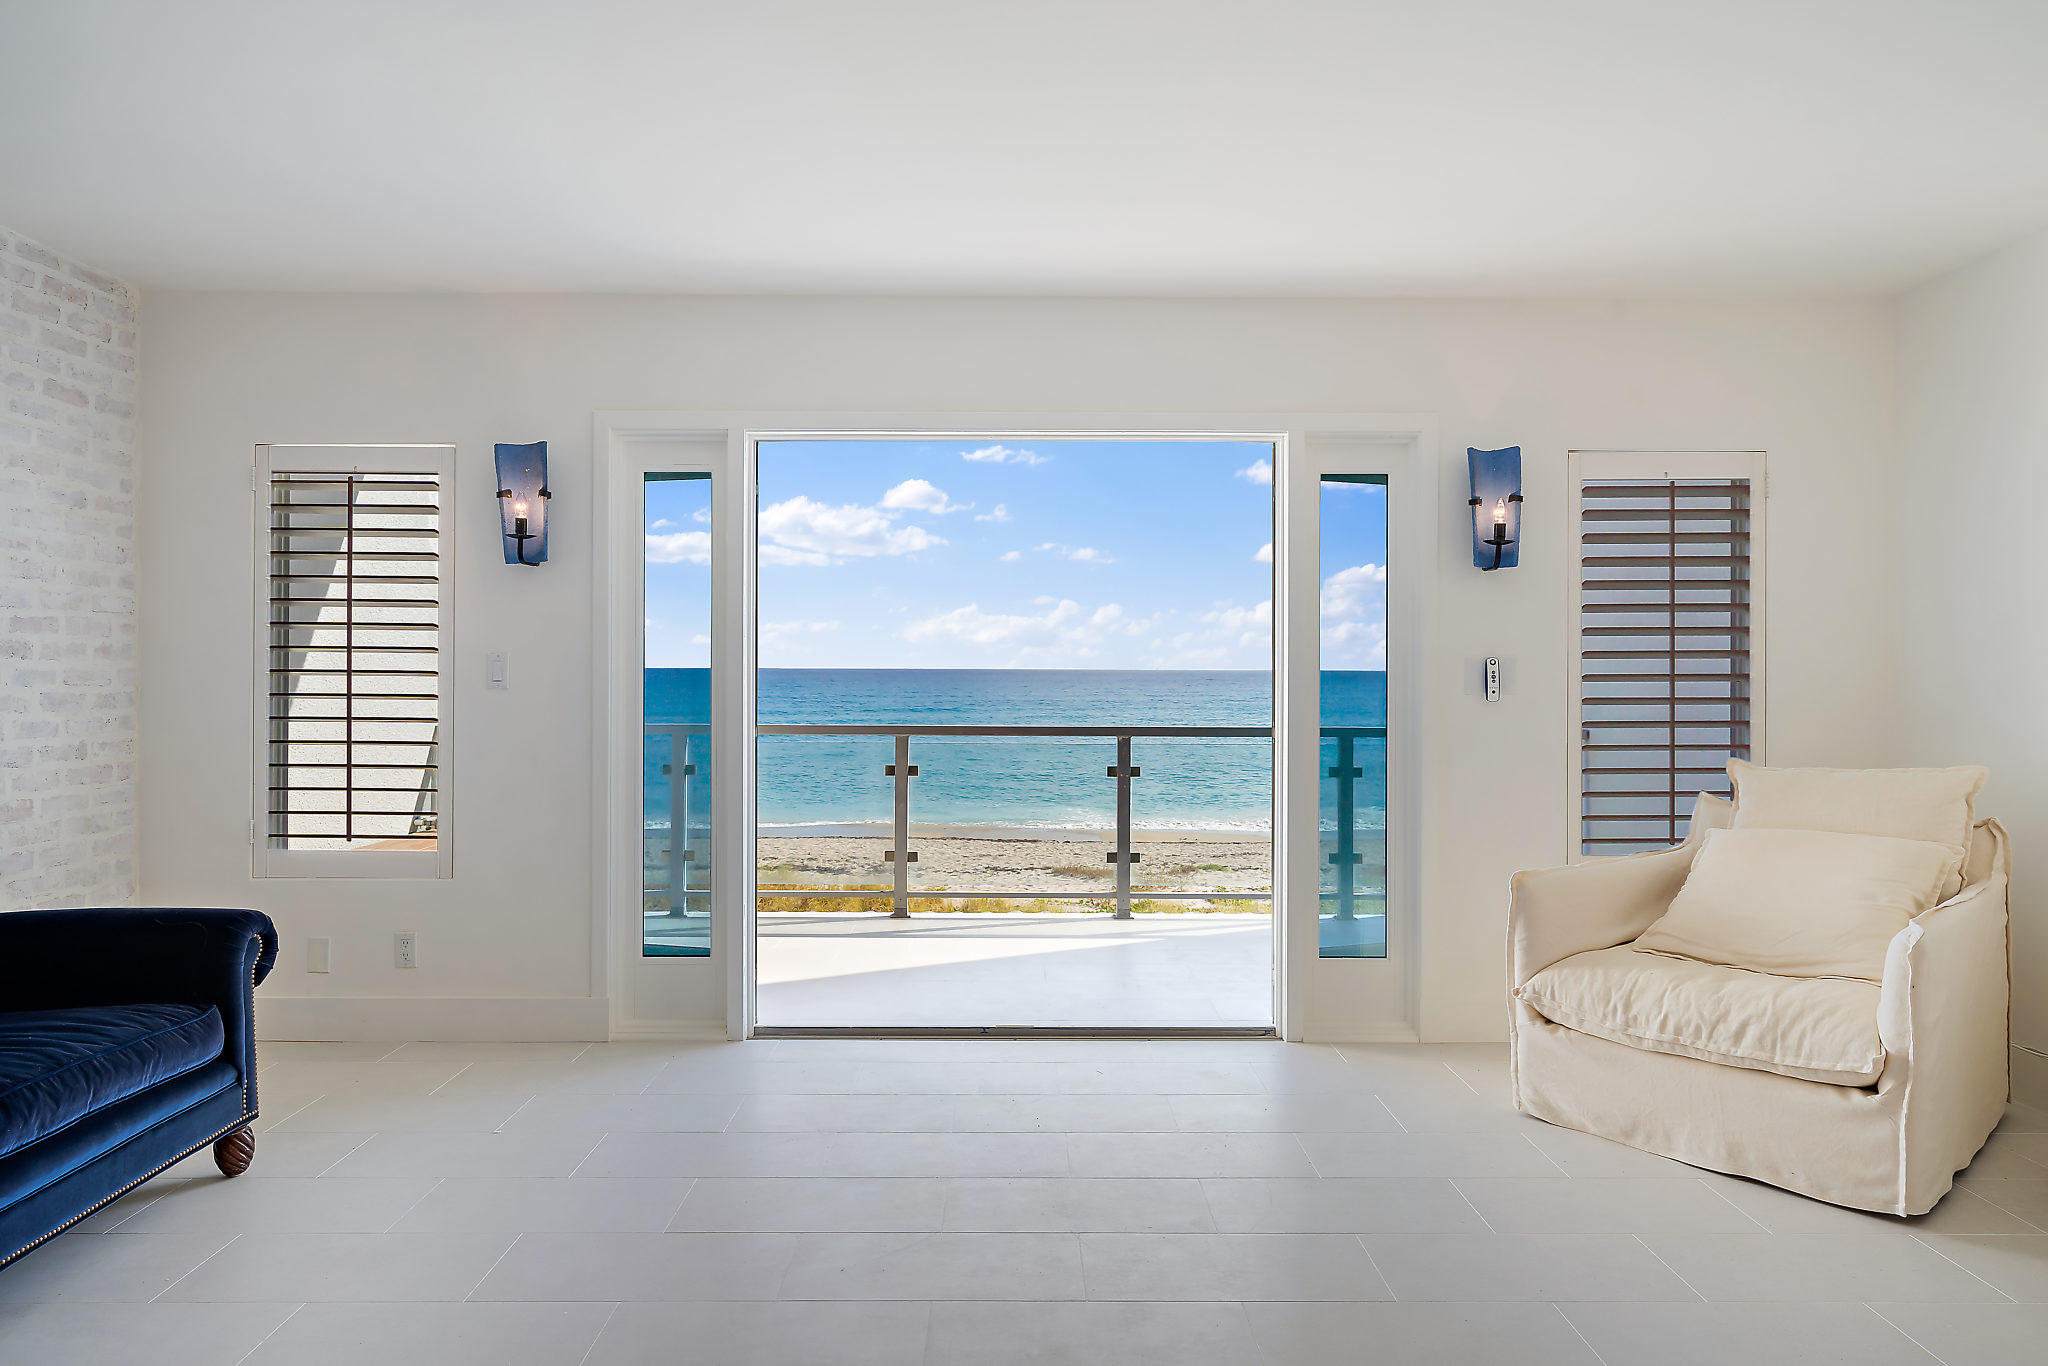 New Home for sale at 1010 Ocean Drive in Juno Beach